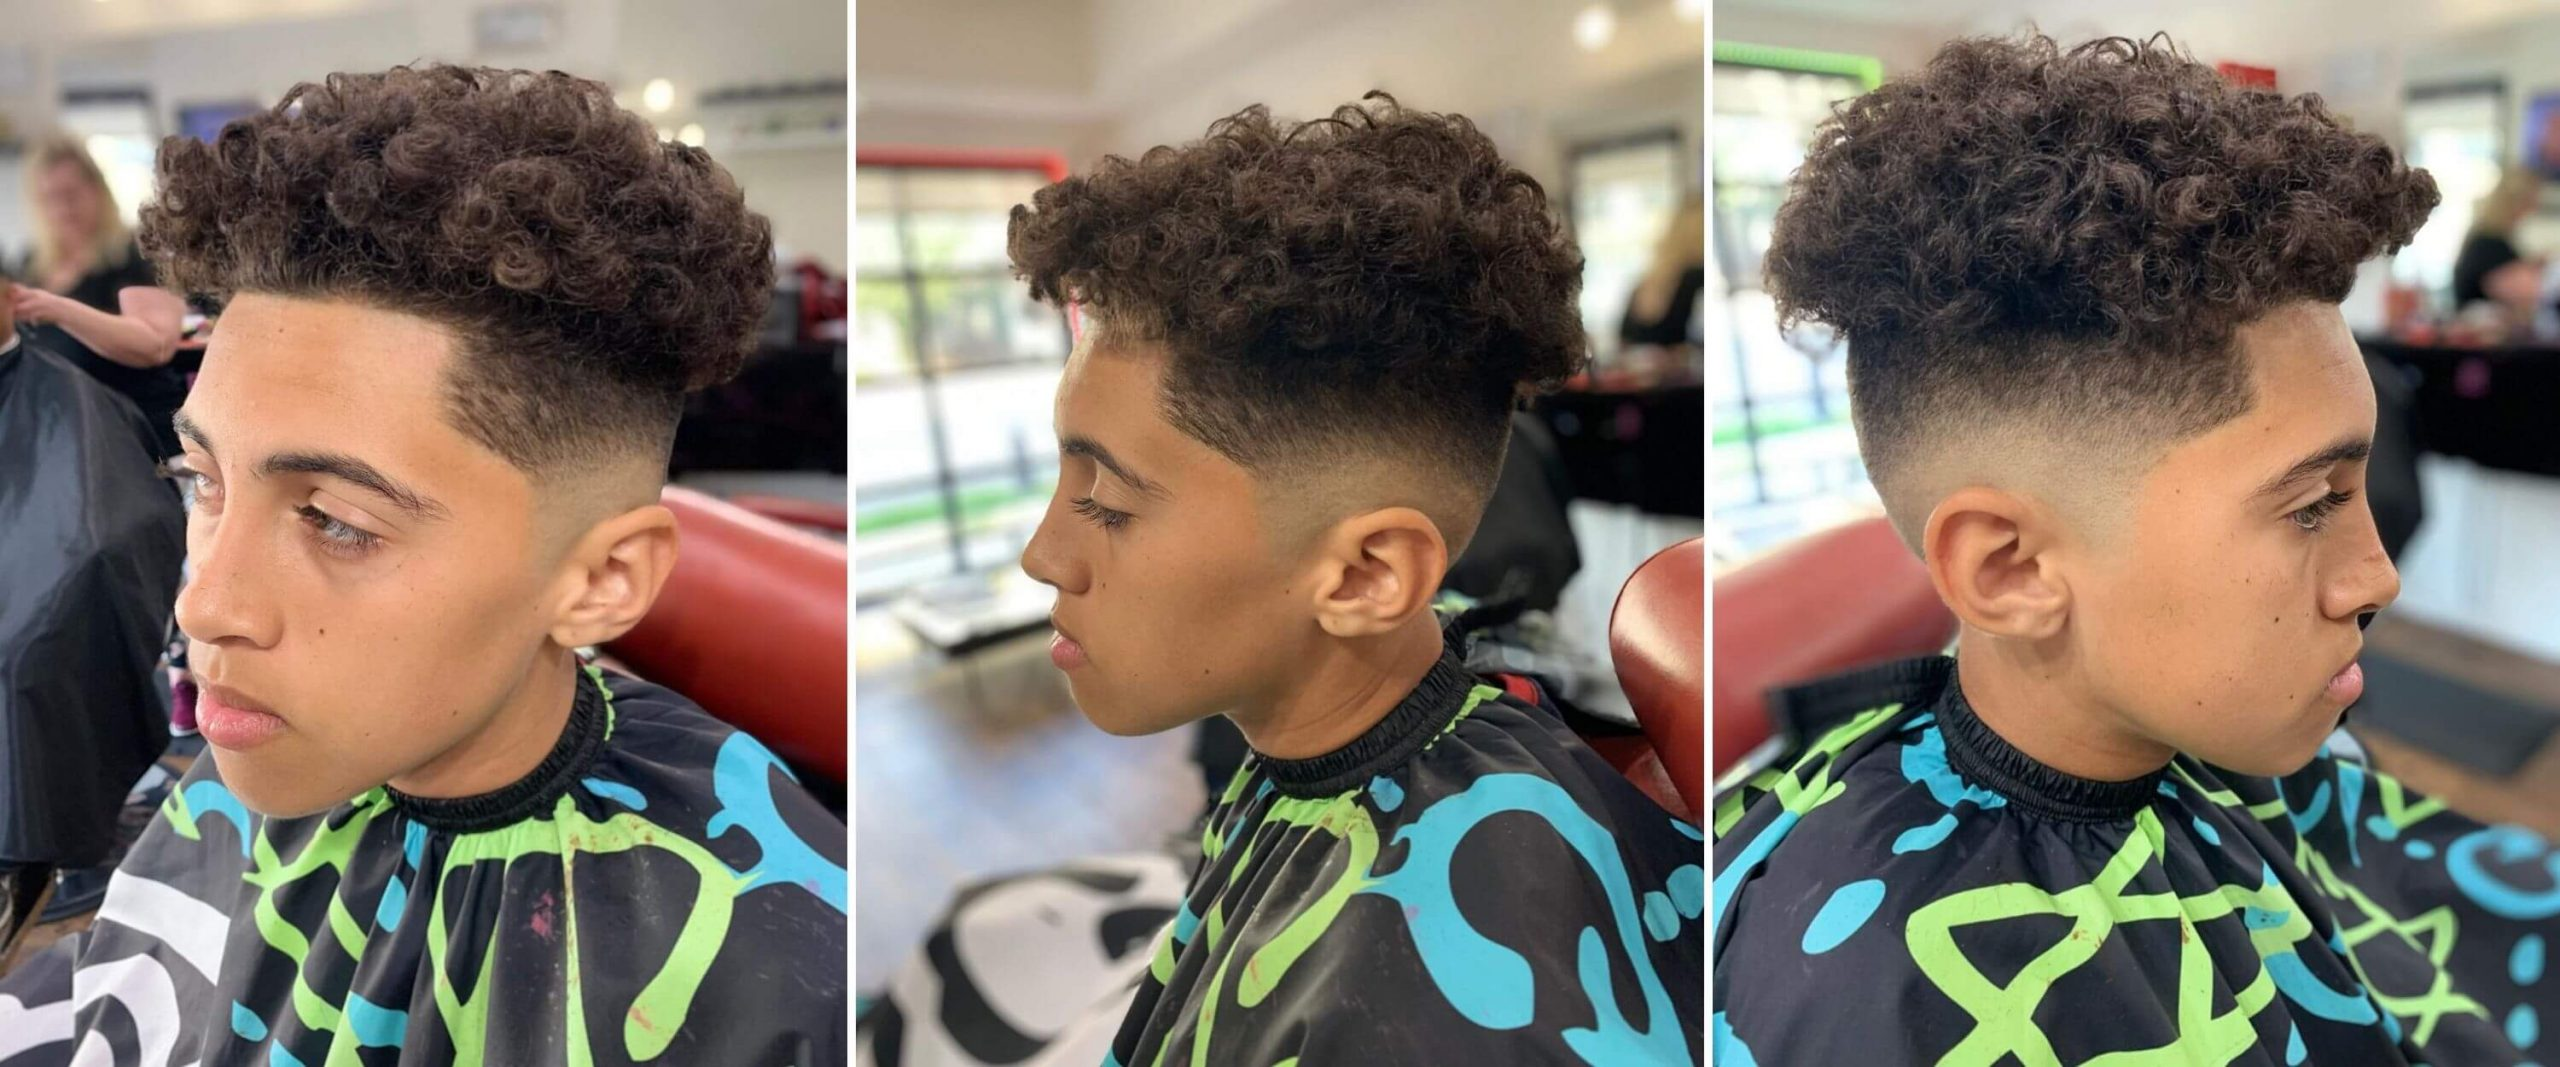 Short Undercut with Curly Cuts